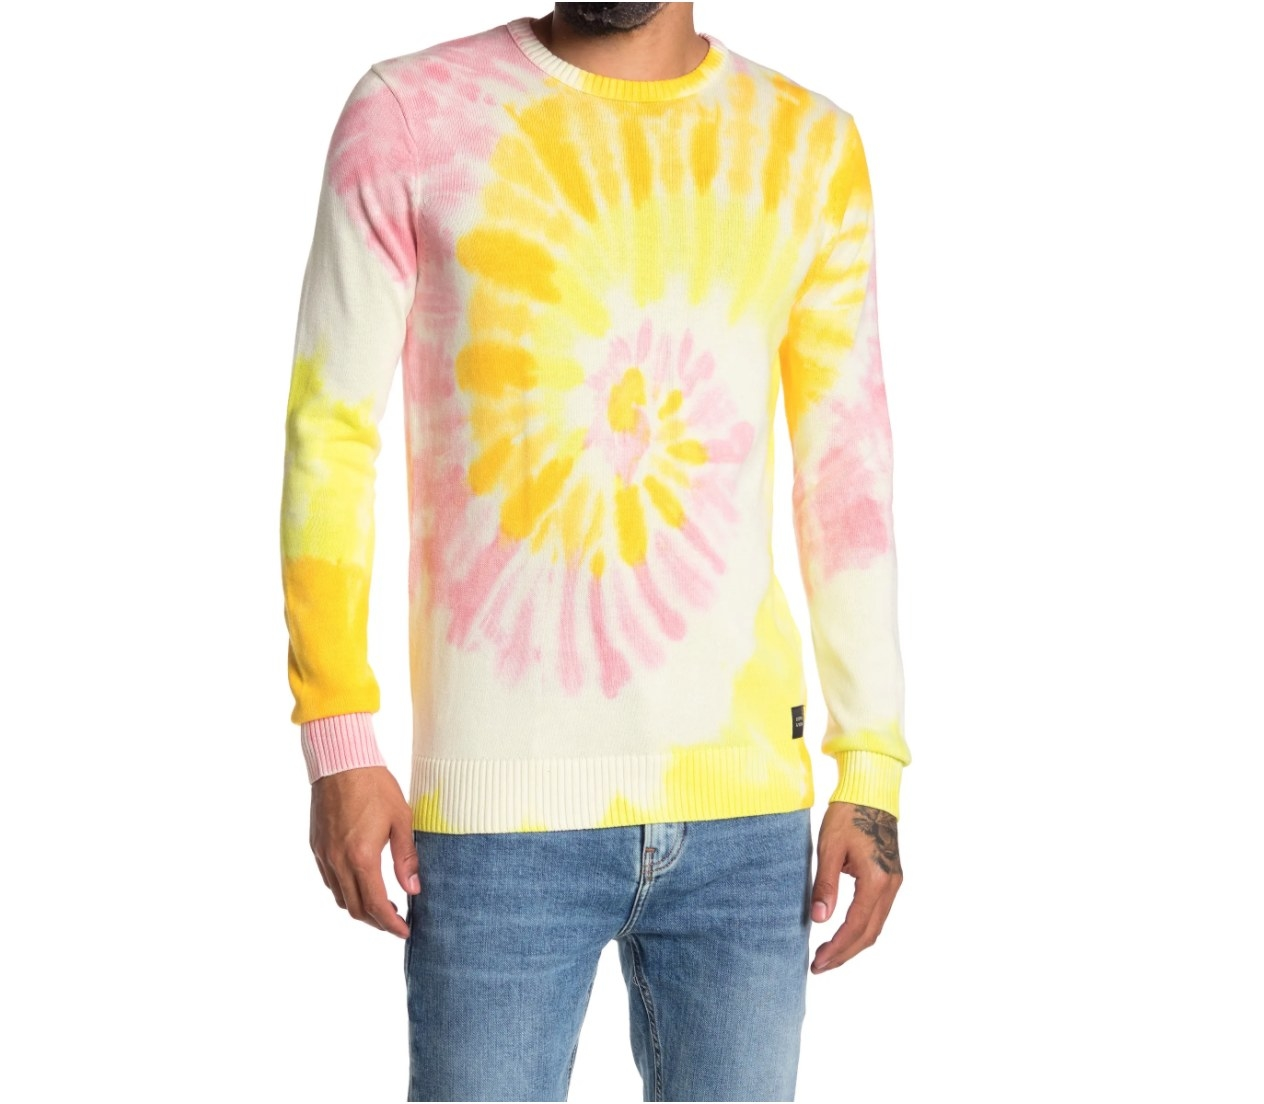 The tie dye print long sleeve shirt in yellow and pink